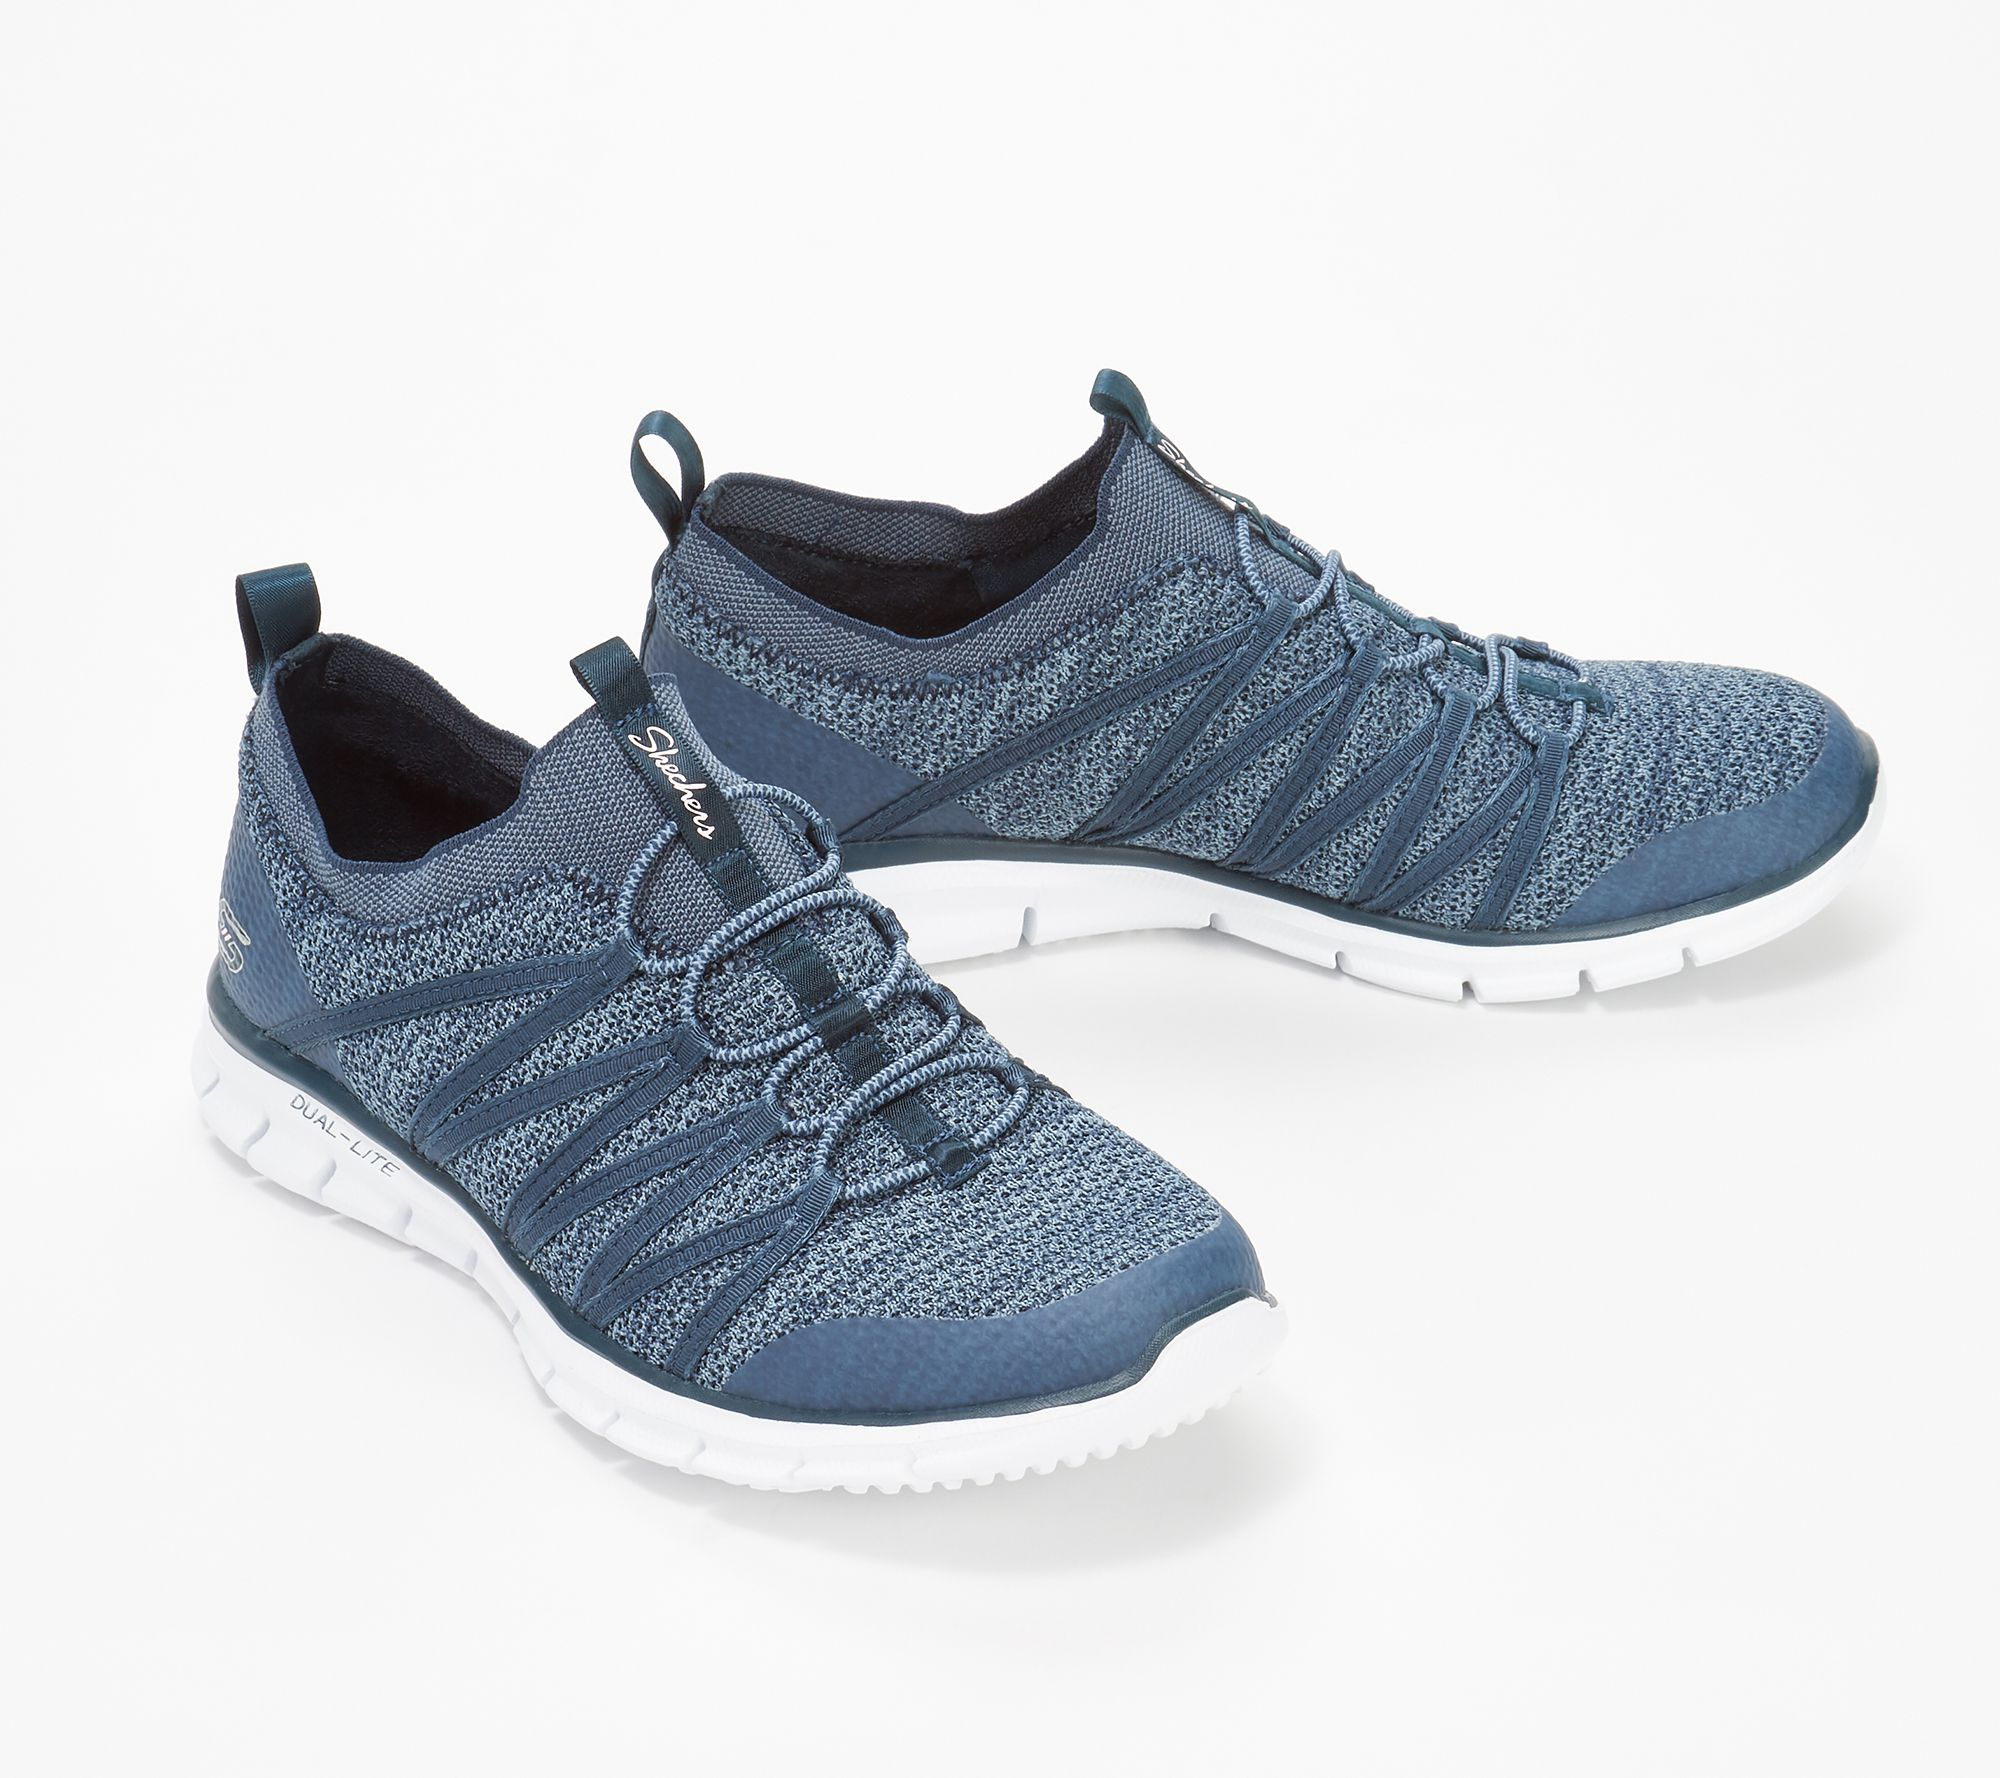 Skechers Stretch Knit Bungee Slip On Sneakers Glider Tuneful Qvc Com